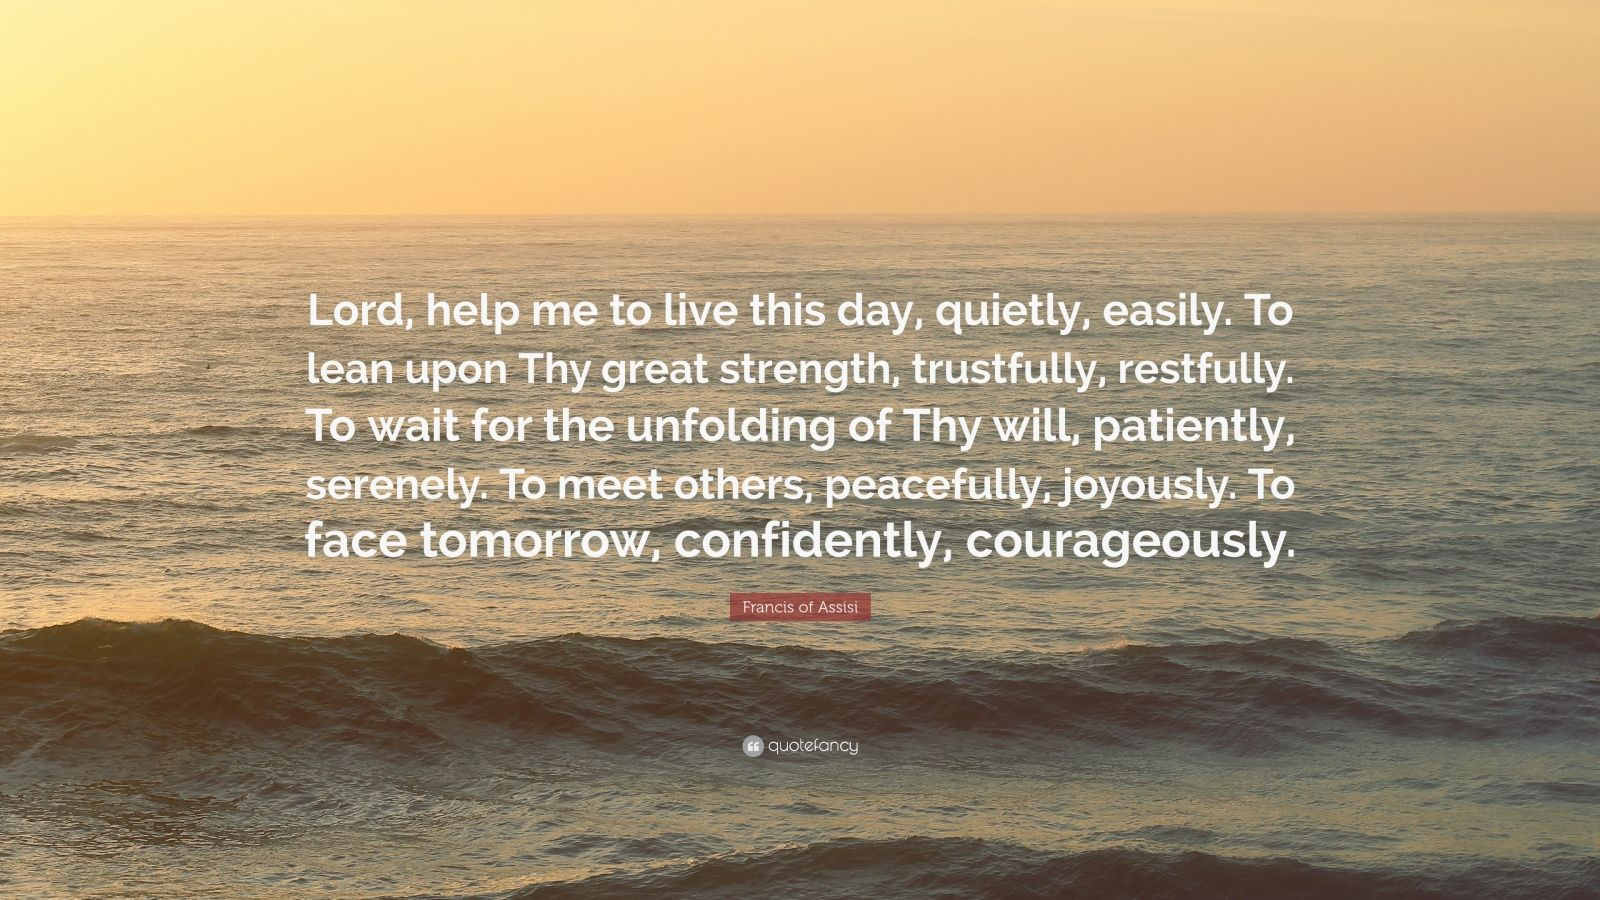 "Francis of Assisi Quote: ""Lord, help me to live this day, quietly, easily. To lean upon Thy great strength, trustfully, restfully. To wait for the unfolding of Thy will, patiently, serenely. To meet others, peacefully, joyously. To face tomorrow, confidently, courageously."""